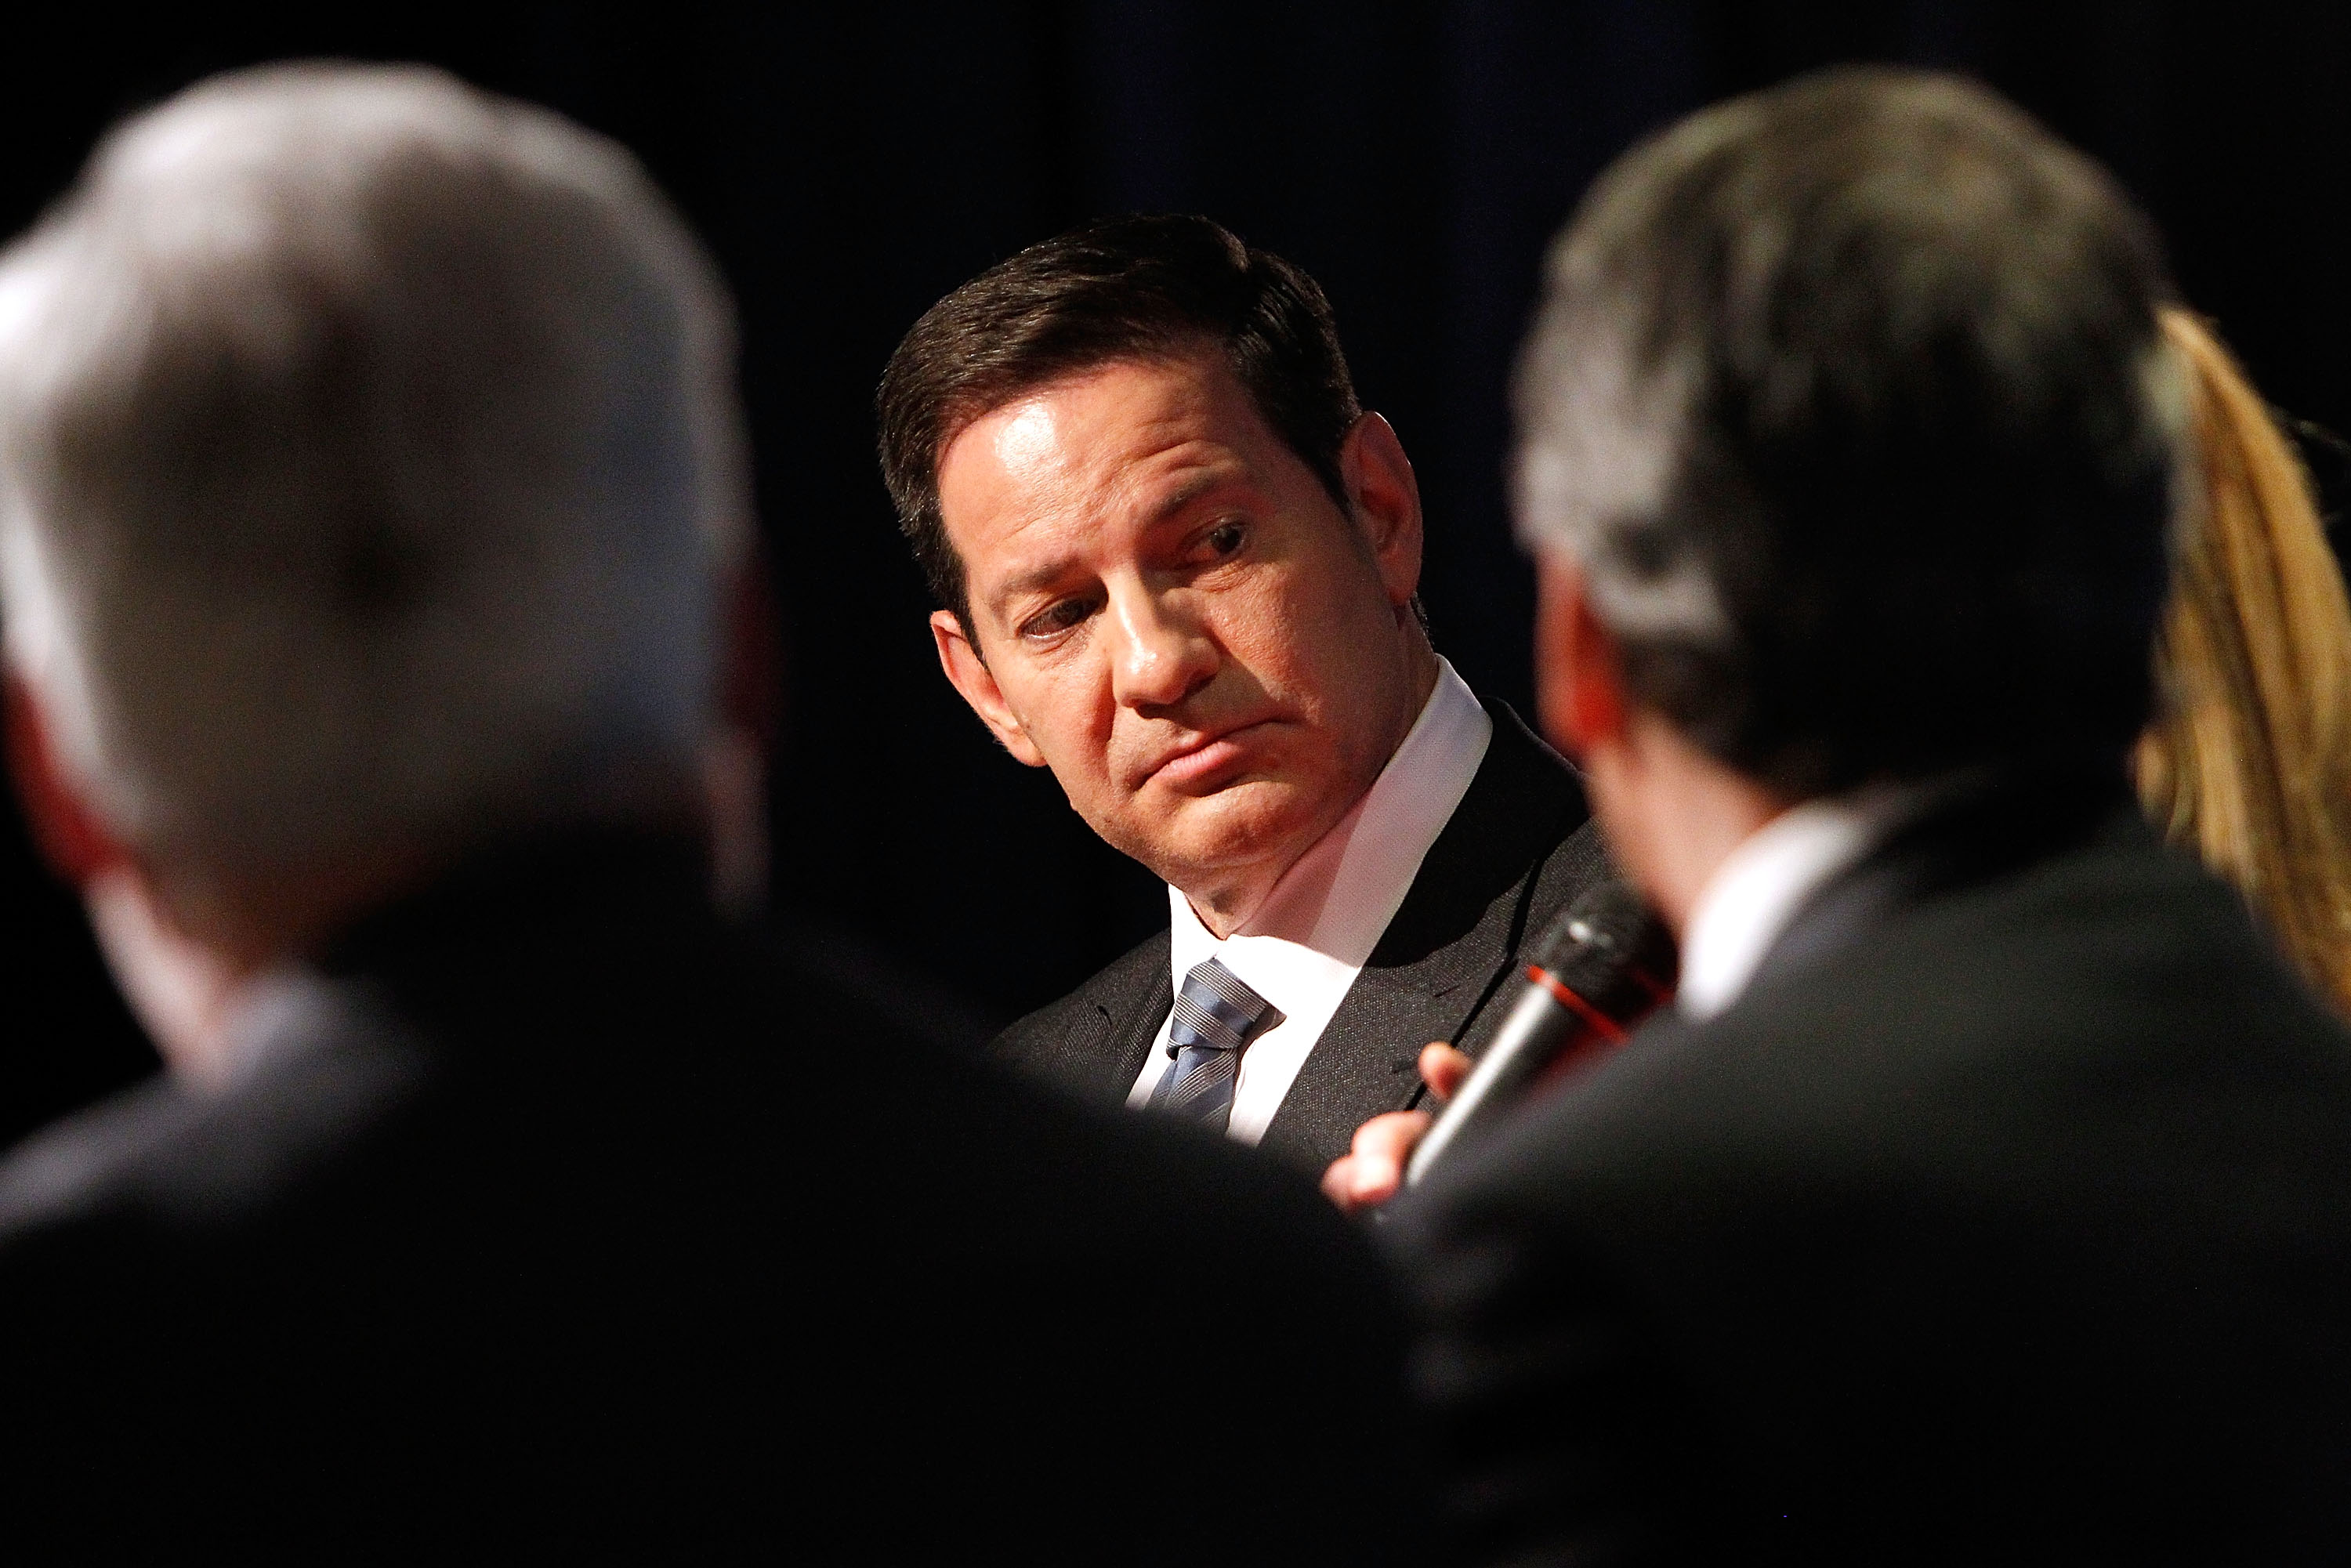 Mark Halperin from Showtime's 'The Circus' participates in a panel discussion at the Showtime-presented finale reception and discussion of the second season of THE CIRCUS: INSIDE THE BIGGEST STORY ON EARTH at The Newseum on May 3, 2017 in Washington, DC.